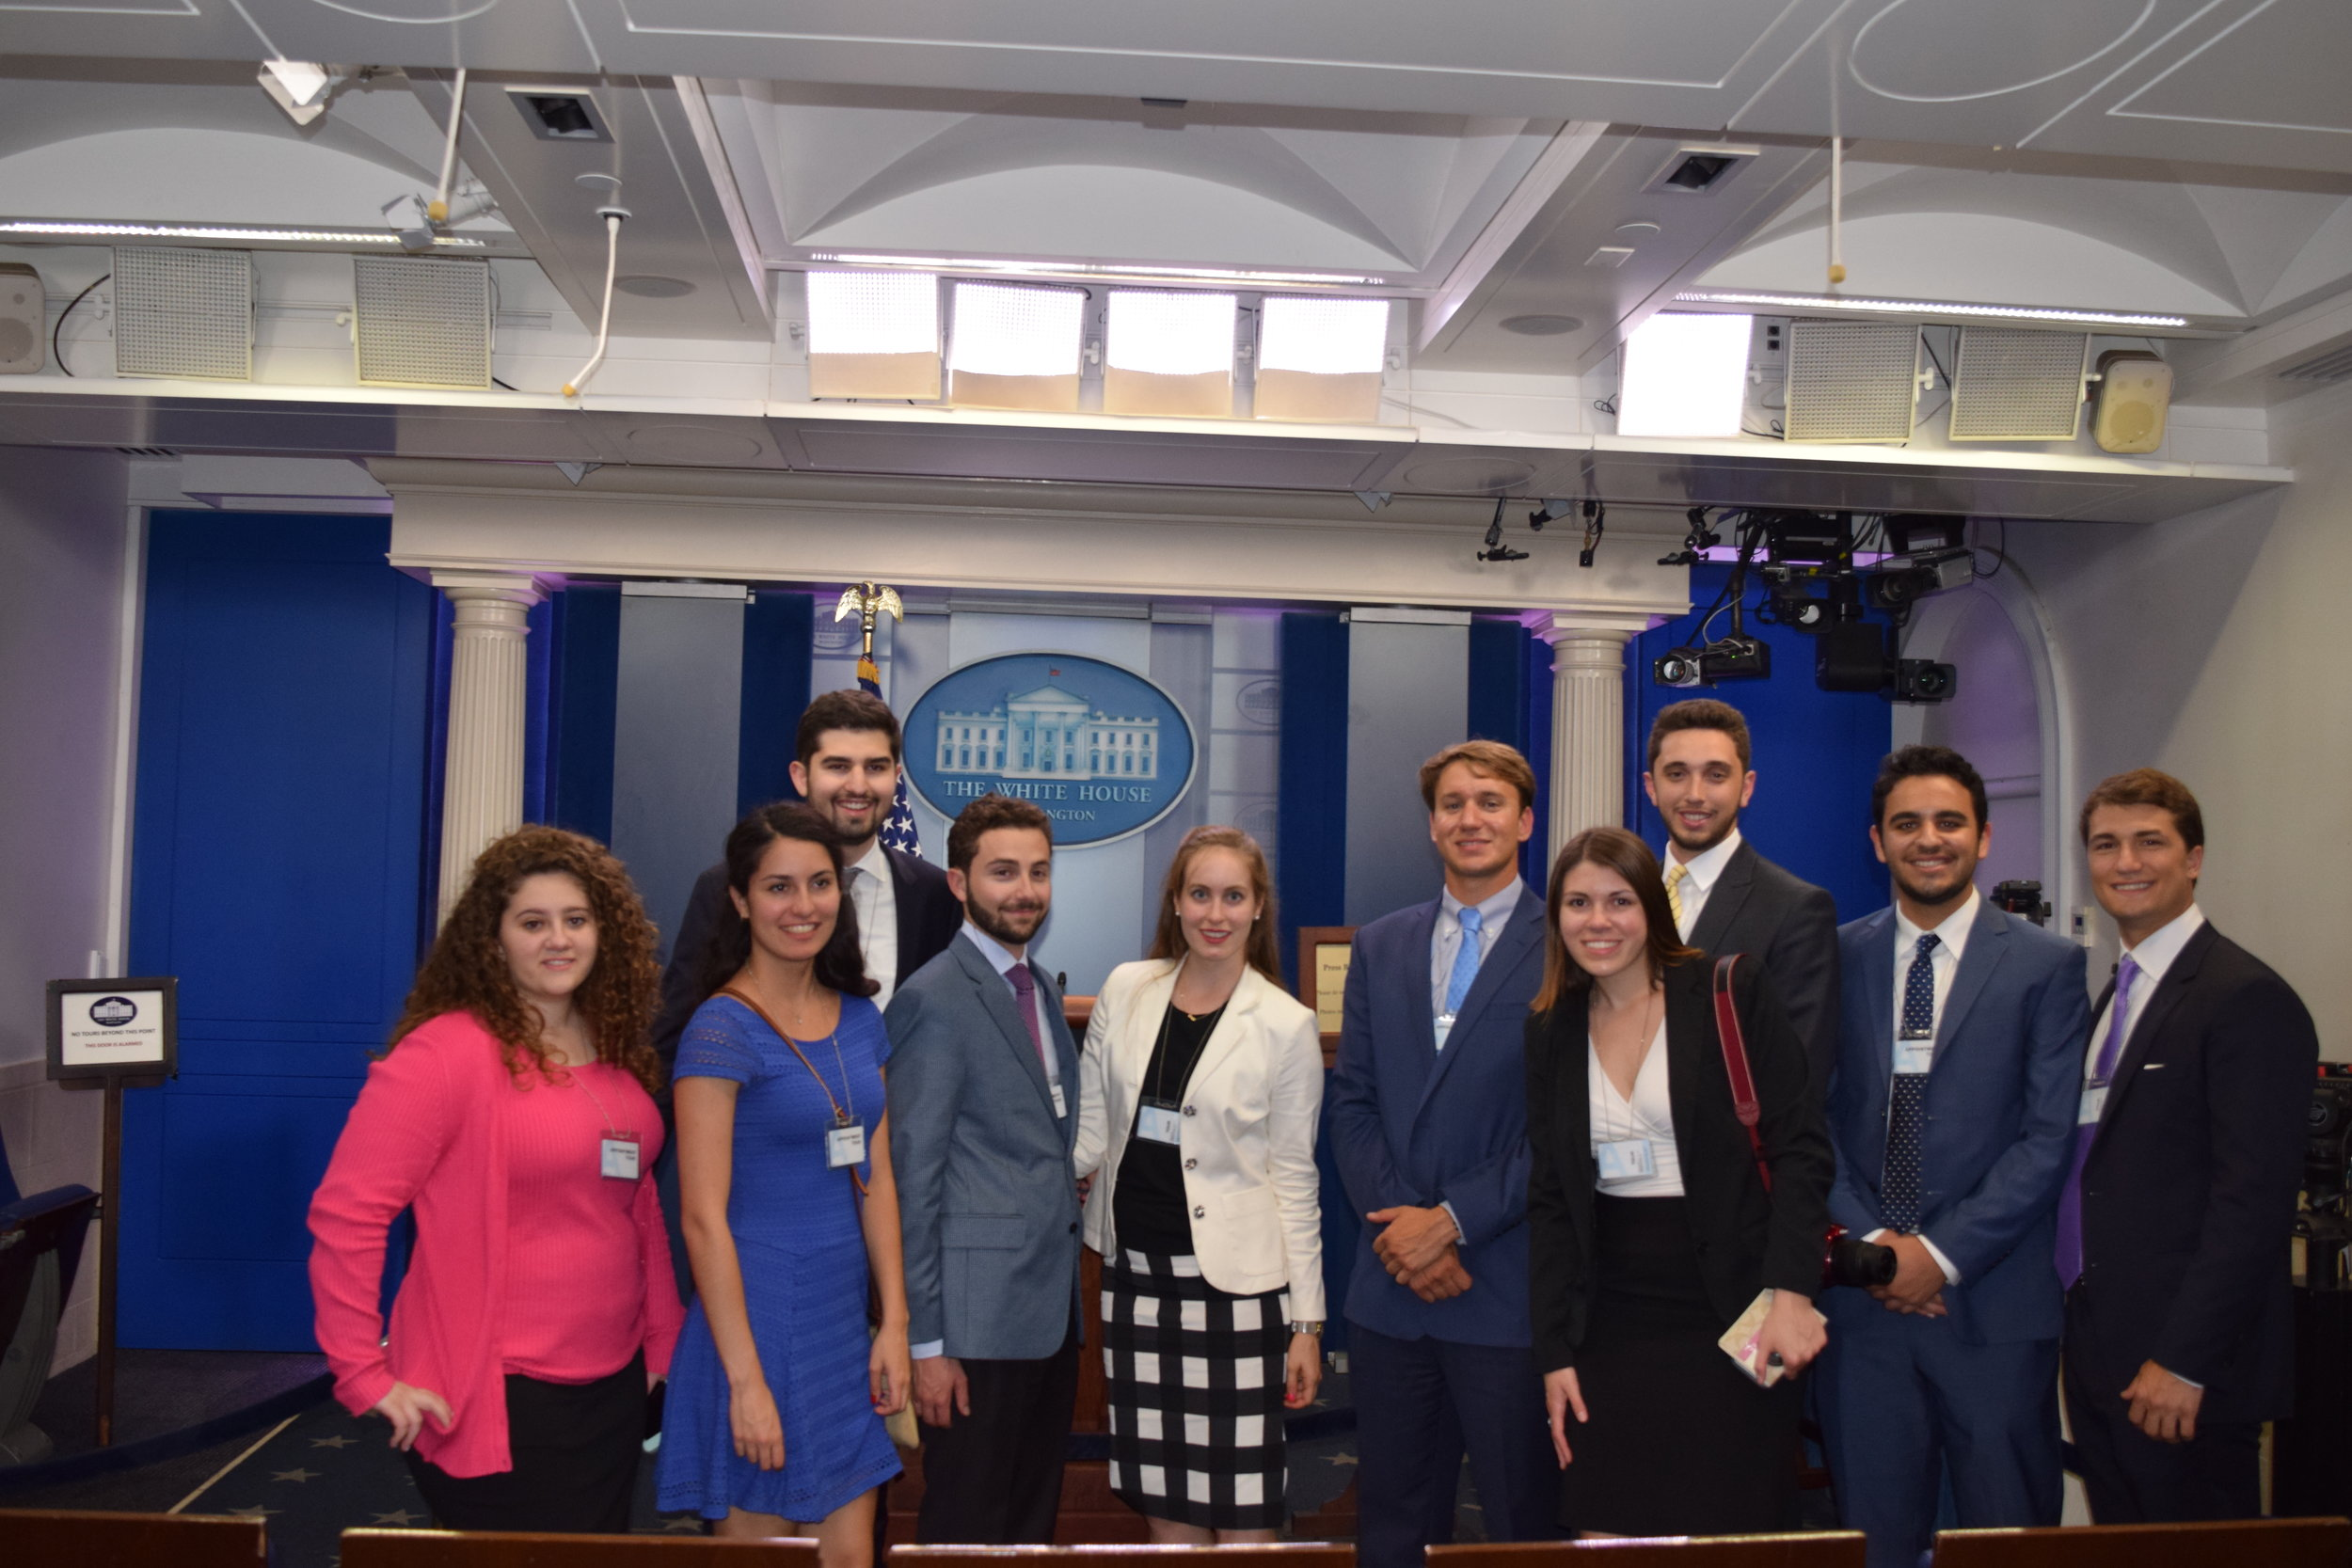 White House Press Briefing Room.